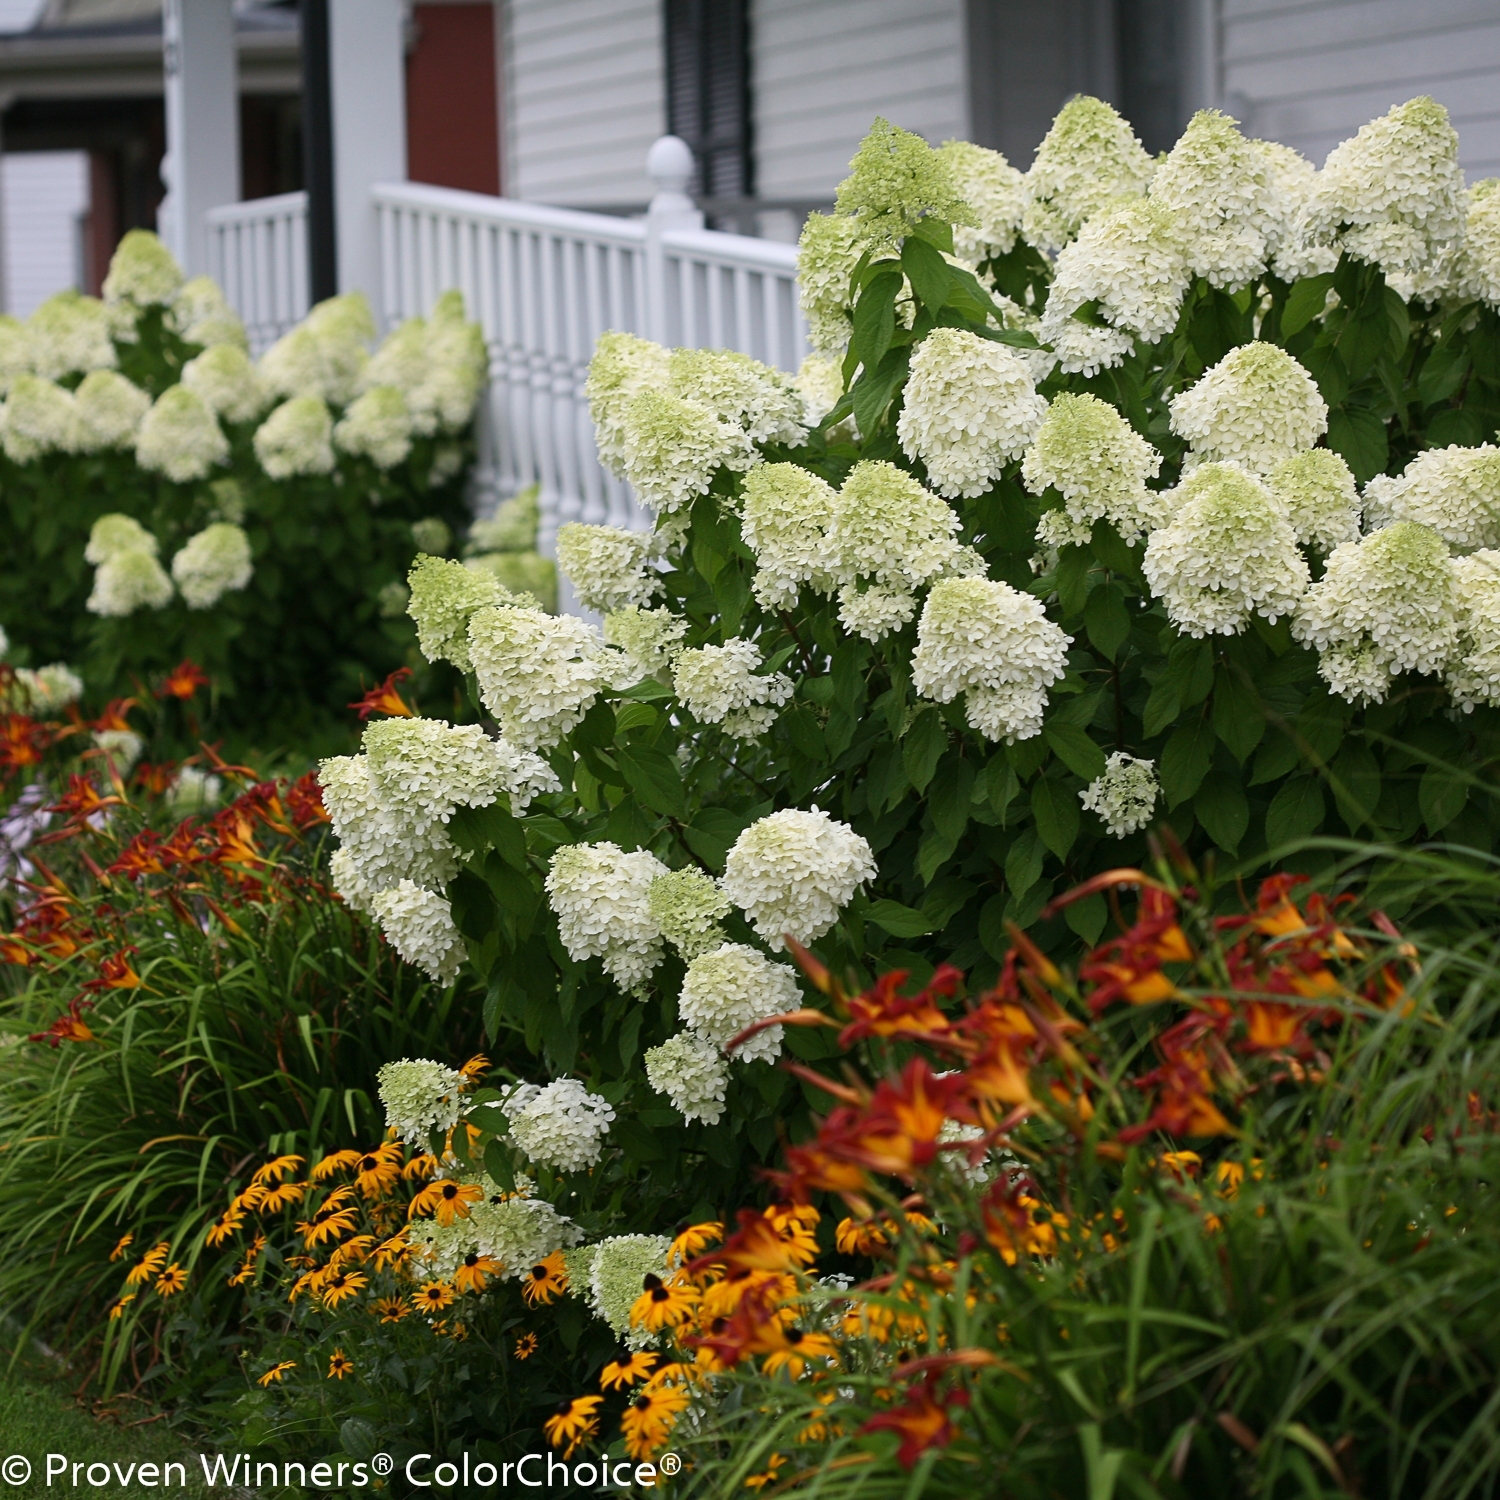 Old and new hydrangea cultivars continue to be popular for Limelight hydrangea